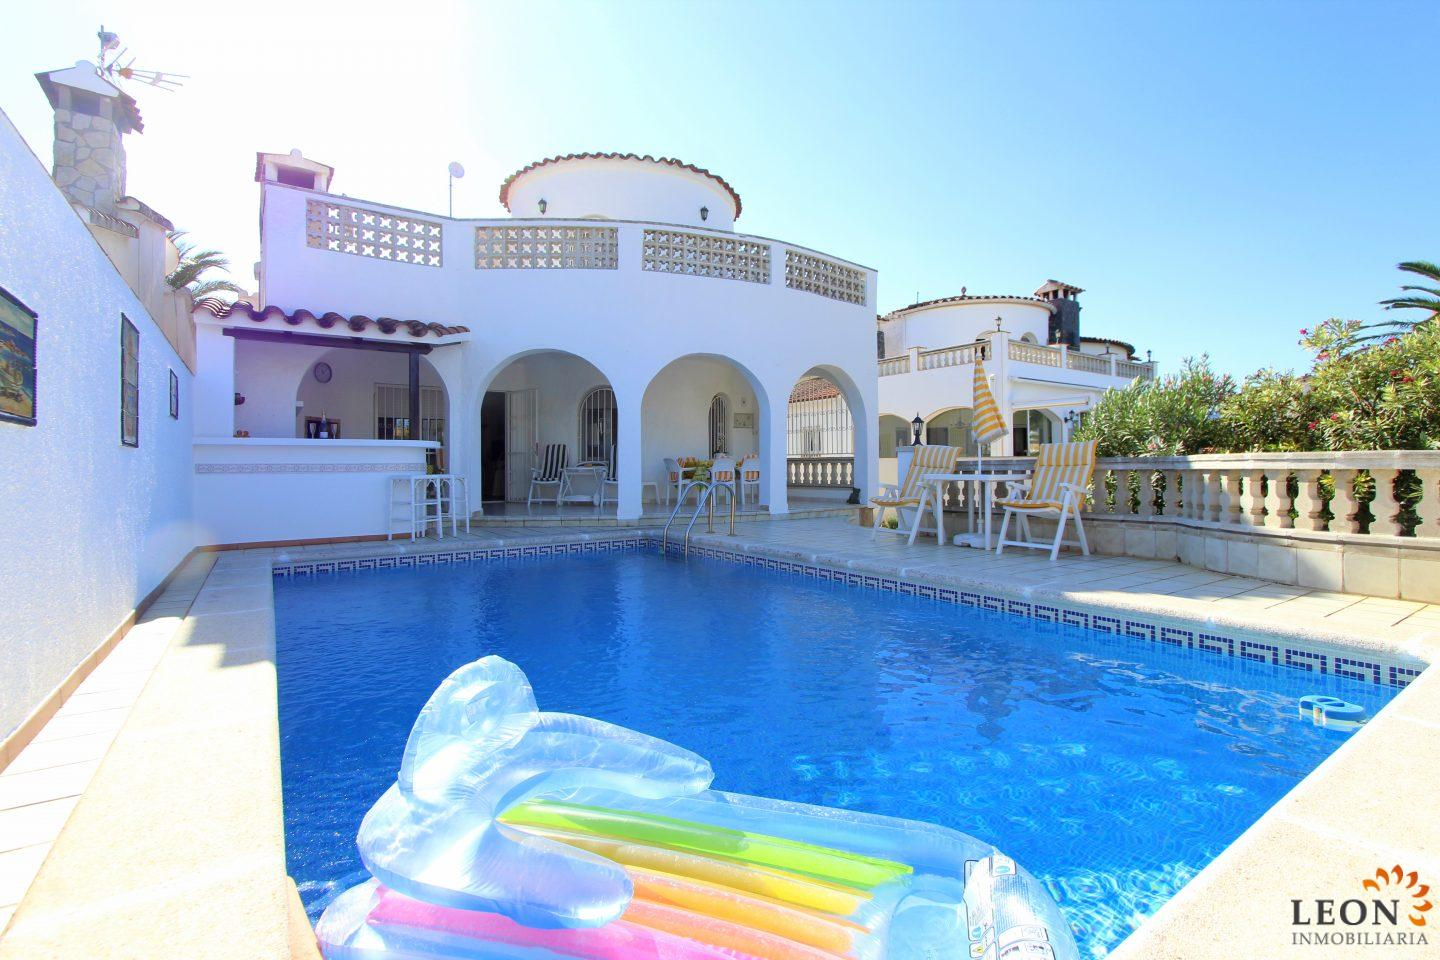 Delightful Perfect Holiday Villa For 6 People With Swimming Pool, Mooring On Canal And  Central Location